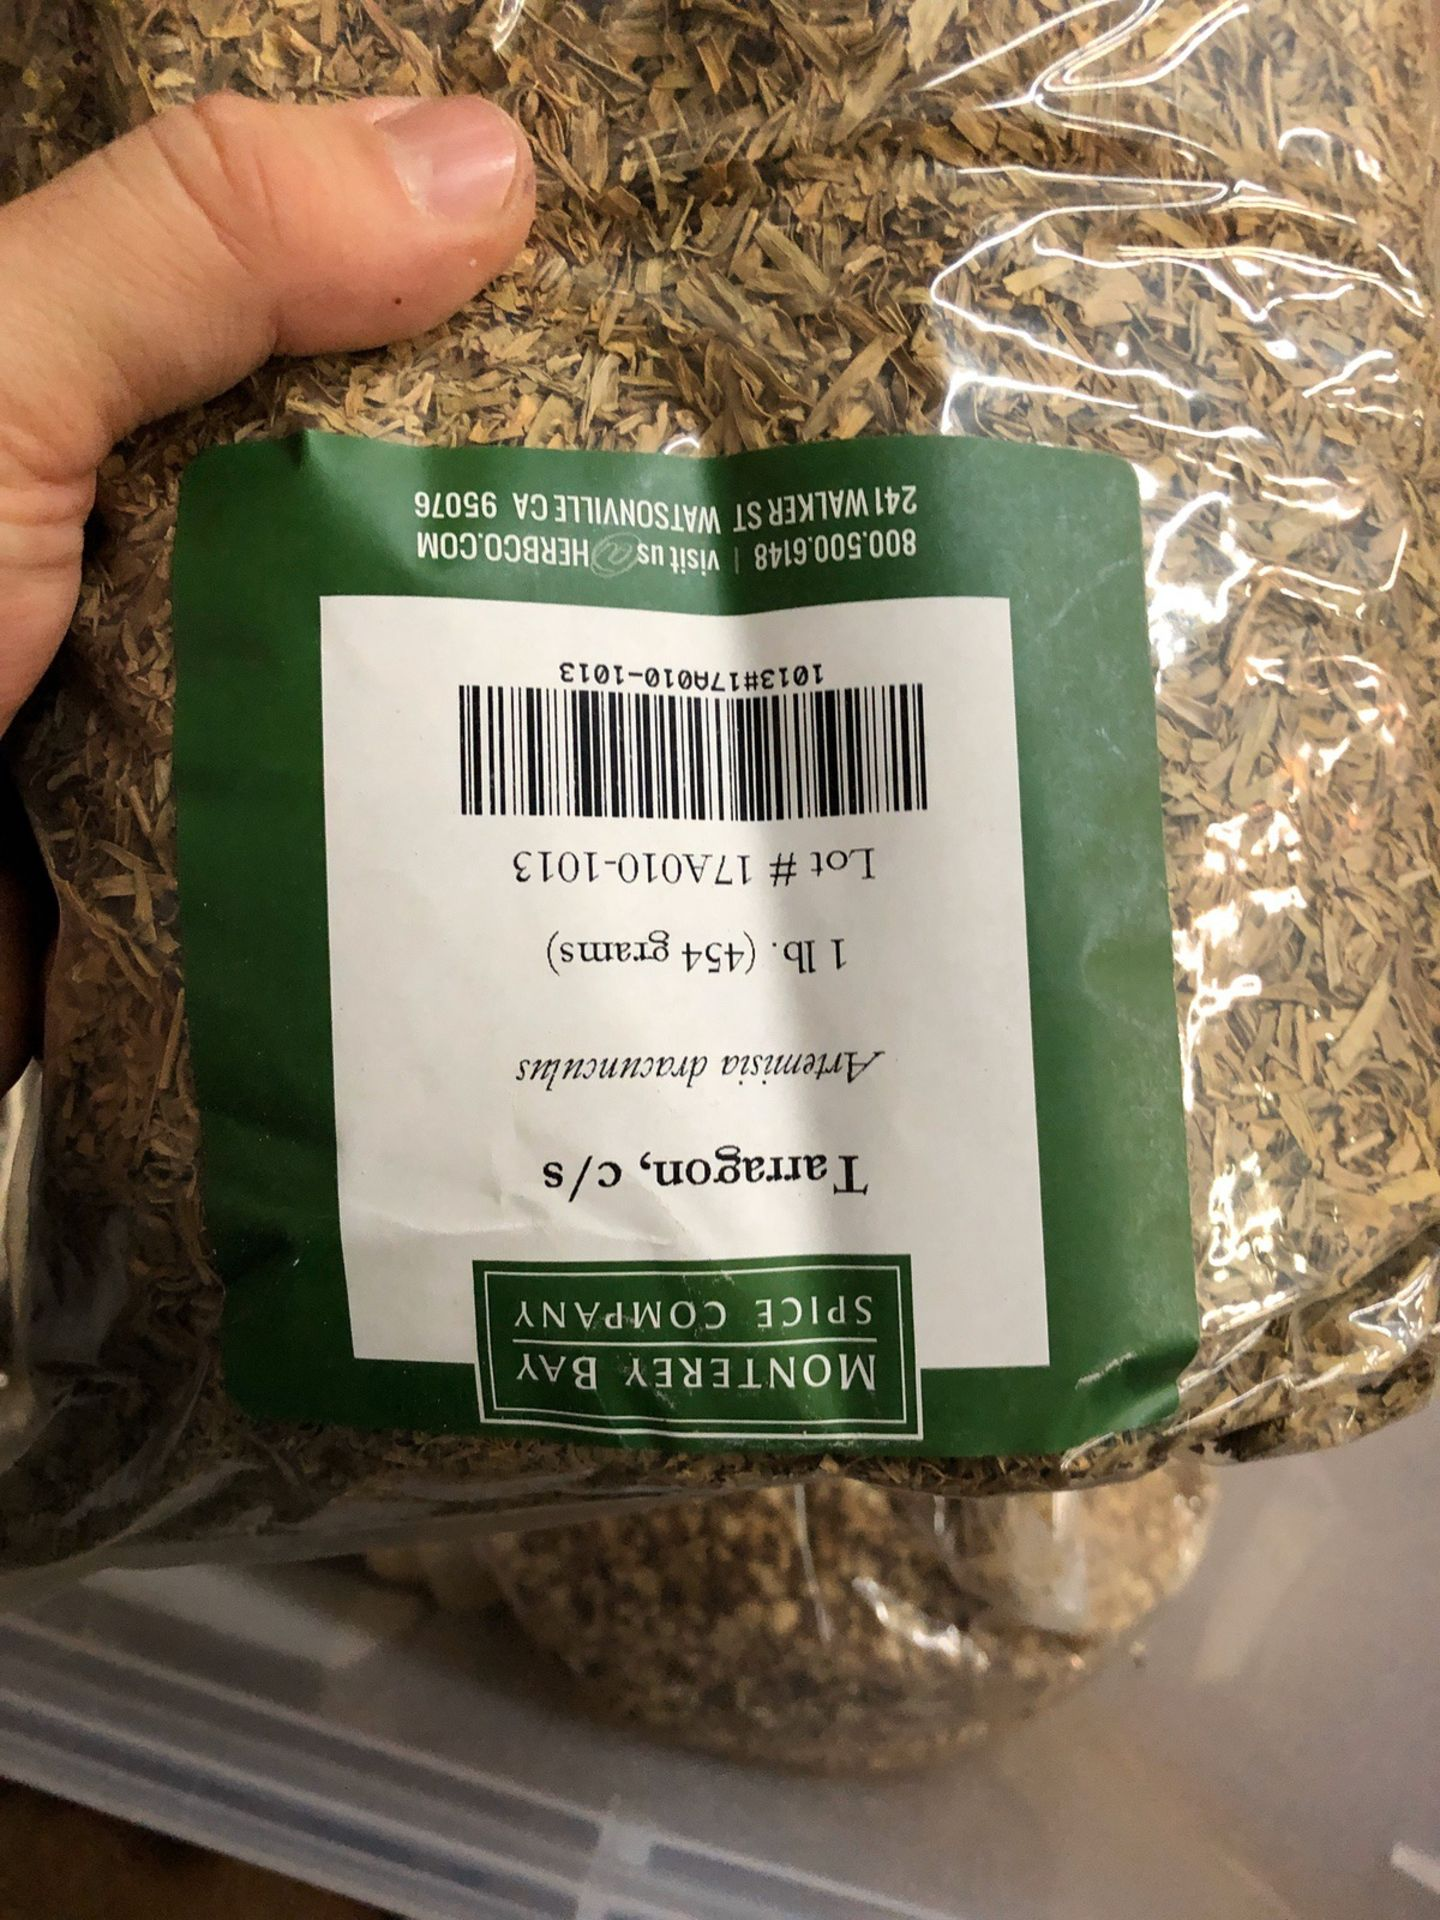 Lot 101 - Lot of Herbs and Botanicals: Coriander Seed, Juniper Berry, Jasmine Tea, Hibisc | Rig Fee: $20 or HC